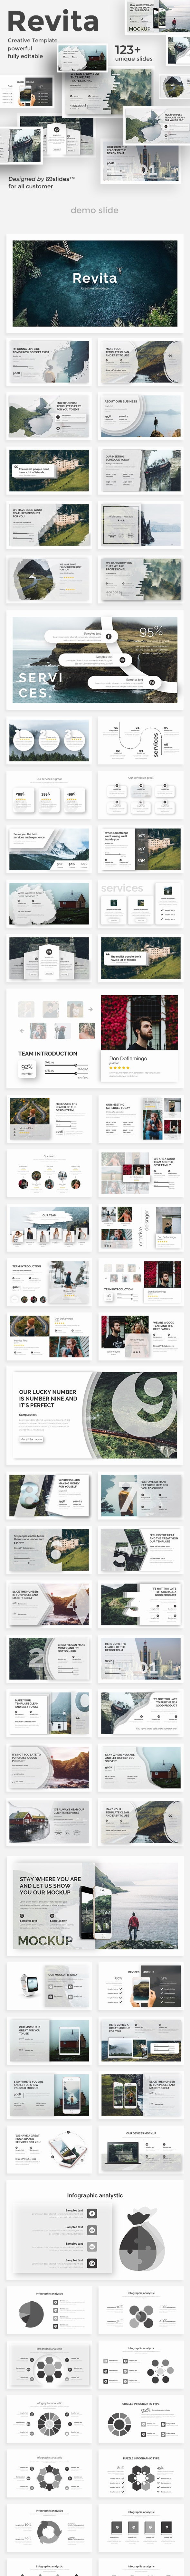 Revita Creative Design Google Slide Template - Google Slides Presentation Templates